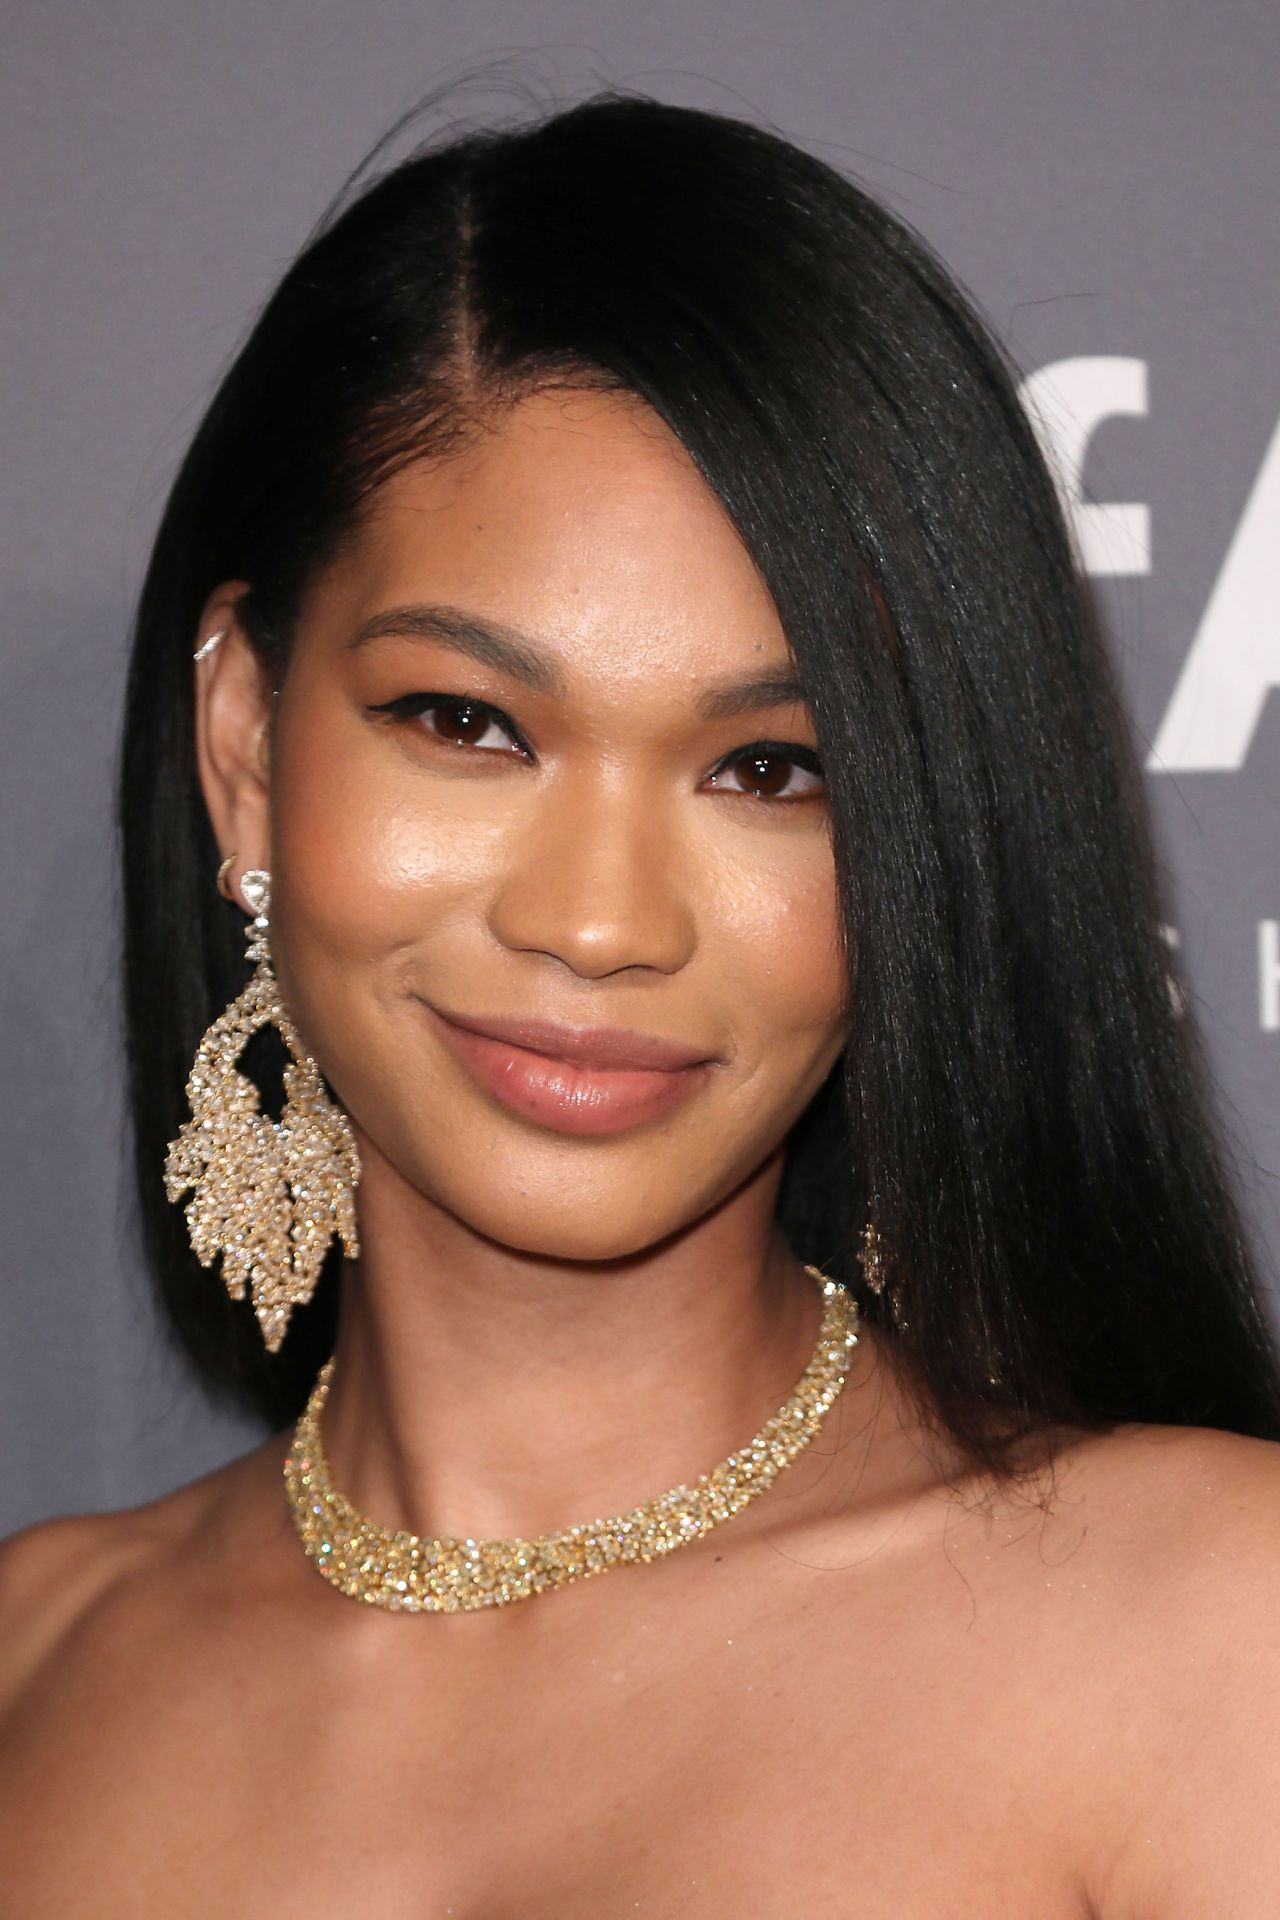 Chanel Iman 2019 Amfar Gala In New York